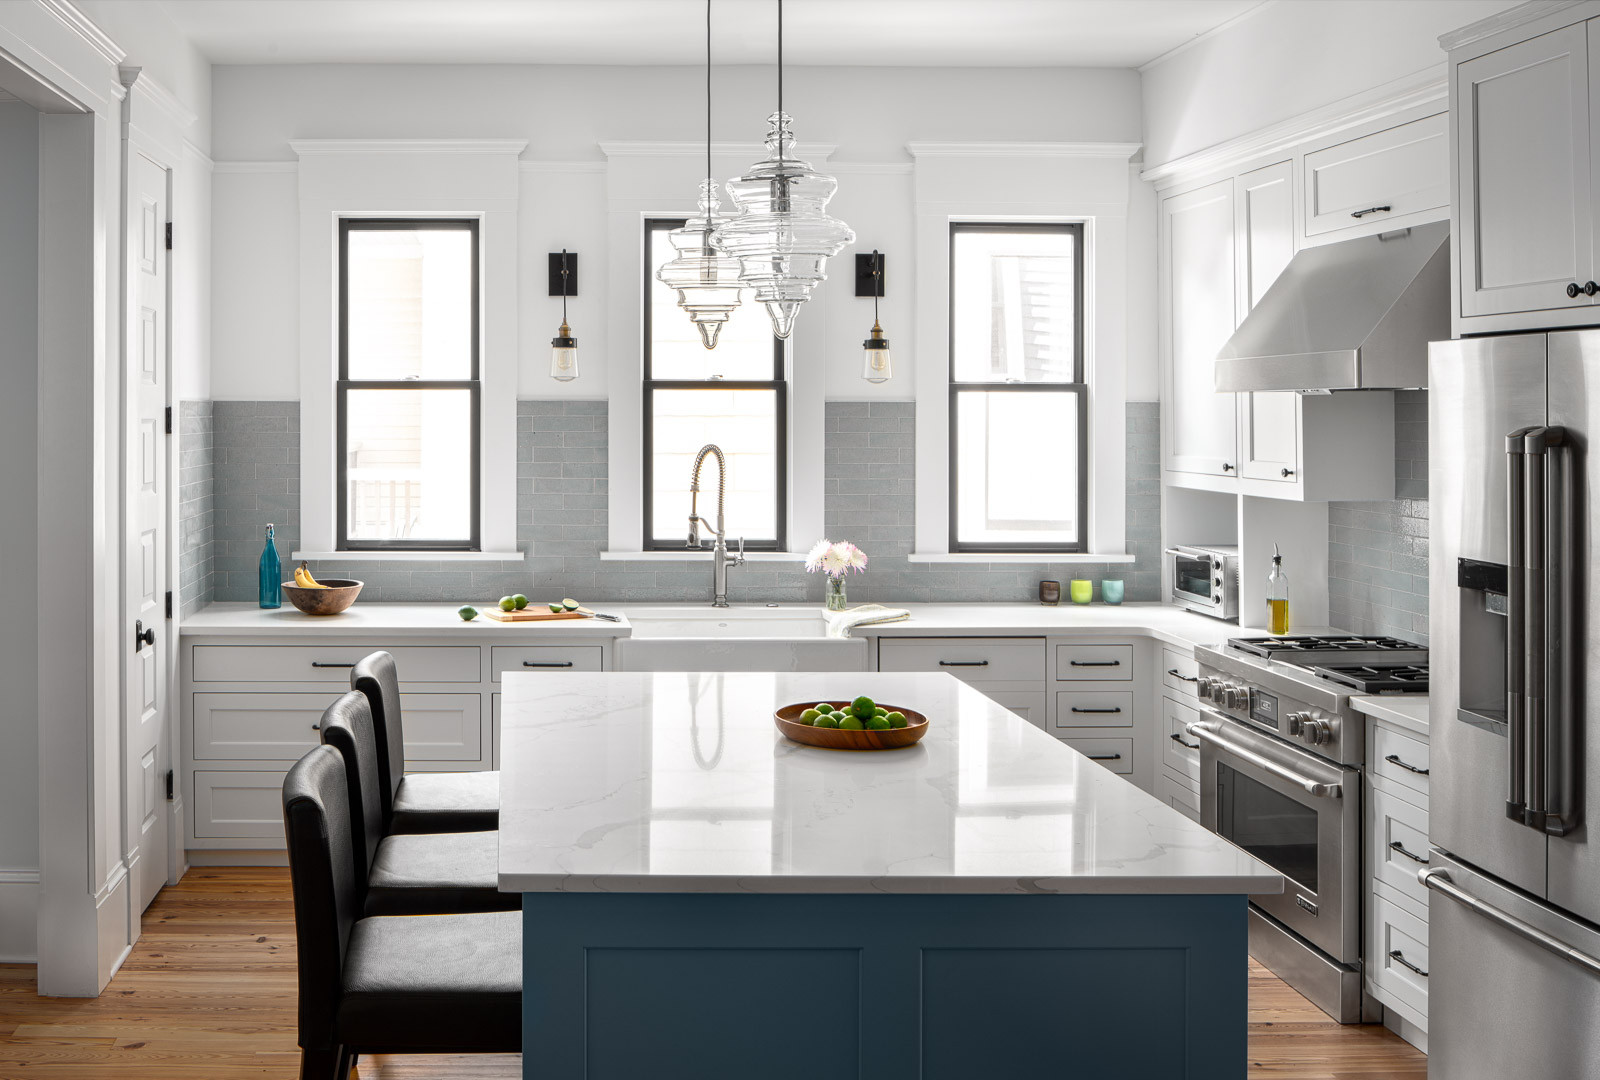 Kitchen Remodel Atlanta  How Much Does a Kitchen Remodel Cost in Atlanta GA